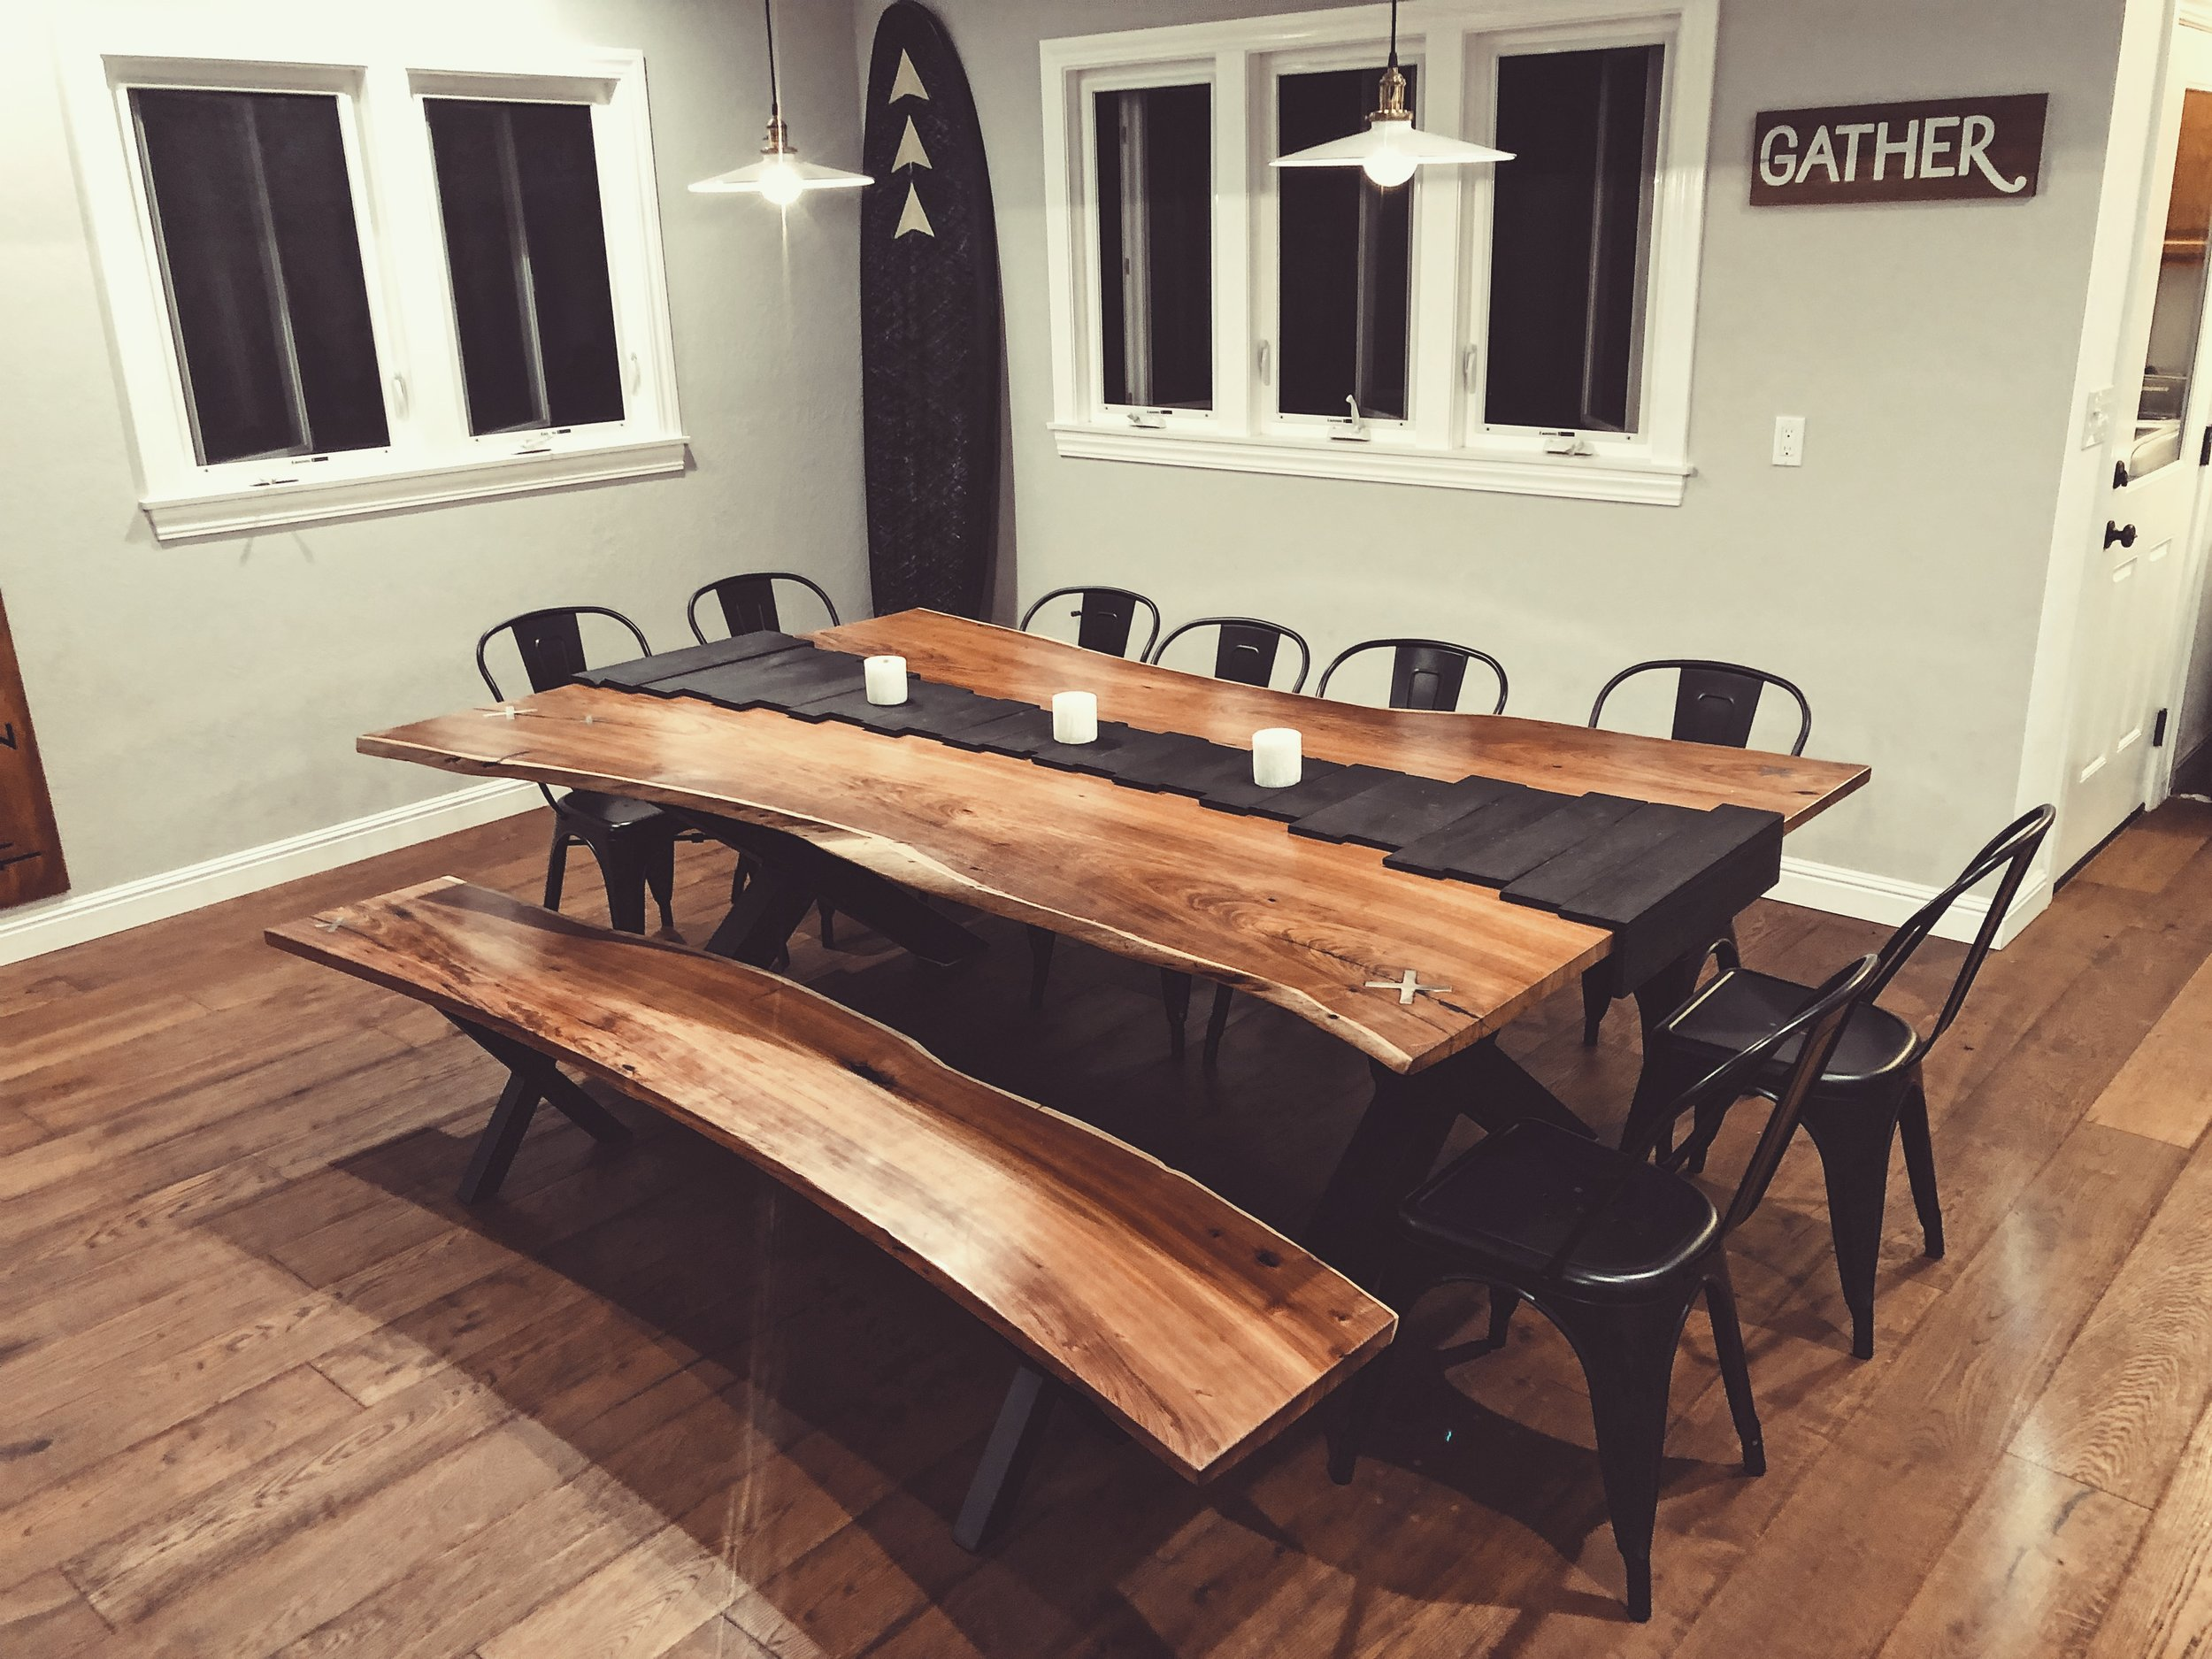 Acacia Live Edge Dinning Table - This project proved to be a test of patience and perseverance. It took countless hours to source the acacia slabs, plane them flat, sand them smooth, hand chisel the inlays and make the custom steel legs. Now this labor of love is the centerpiece for our family meals and memories.